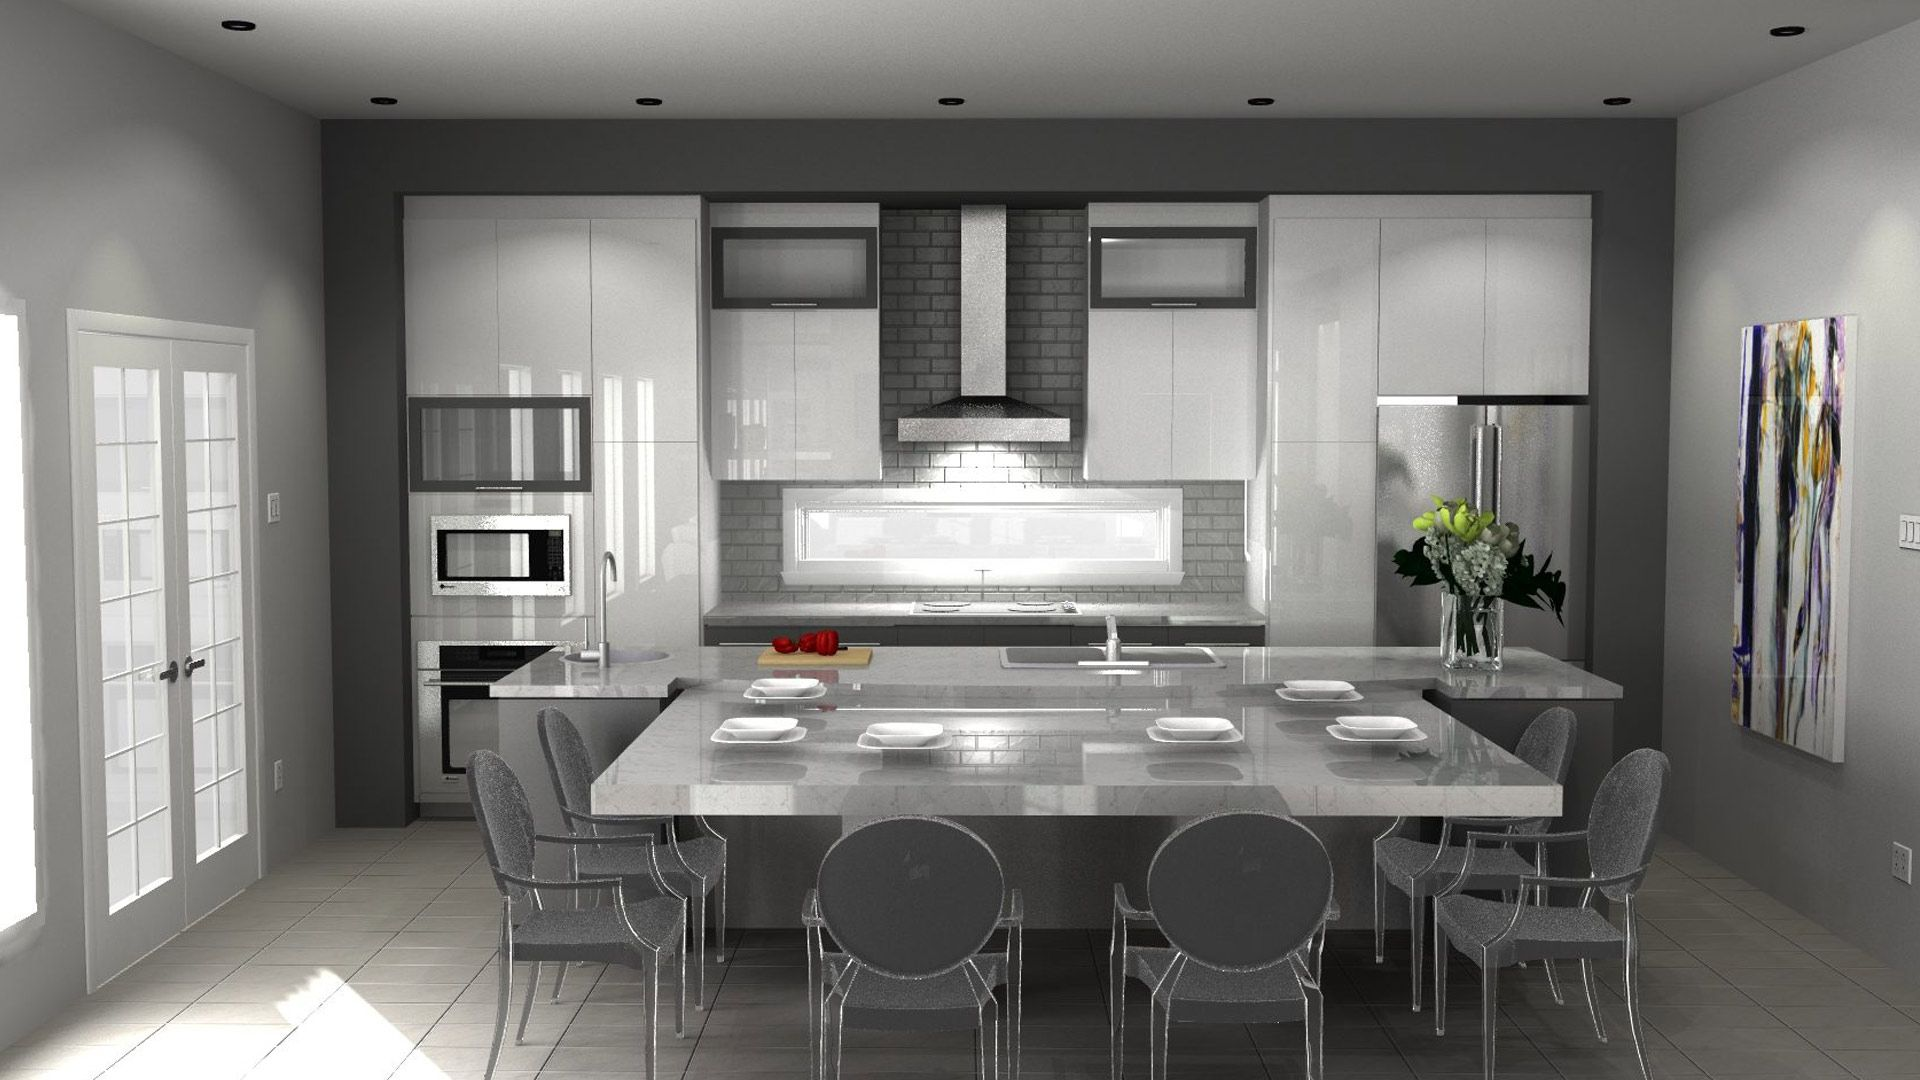 Transitional Style Kitchens 2020